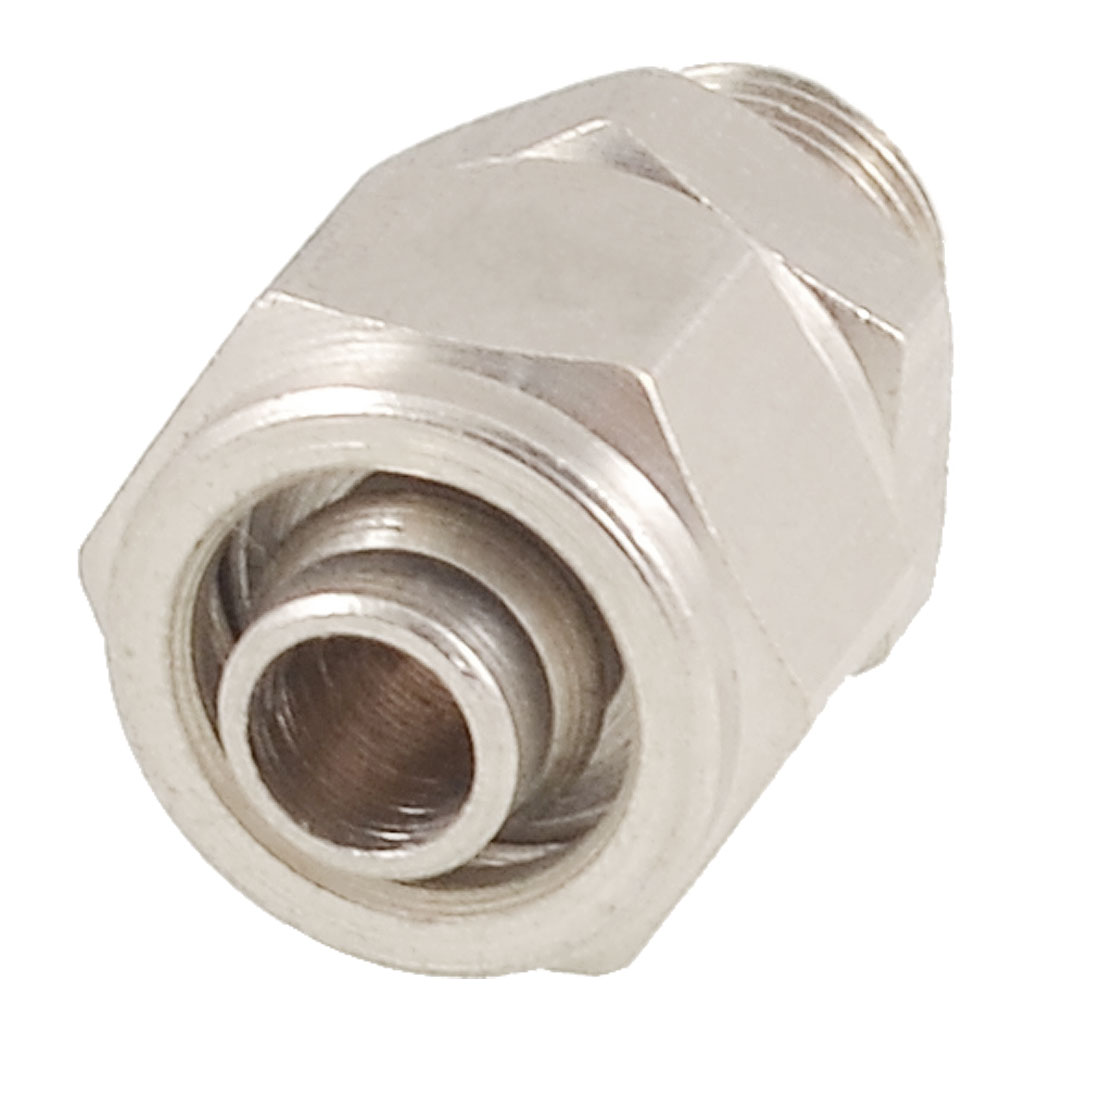 "0.35"" Male Threaded 0.28"" Pipe Air Pneumatic Quick Coupler Connector Silver Tone"